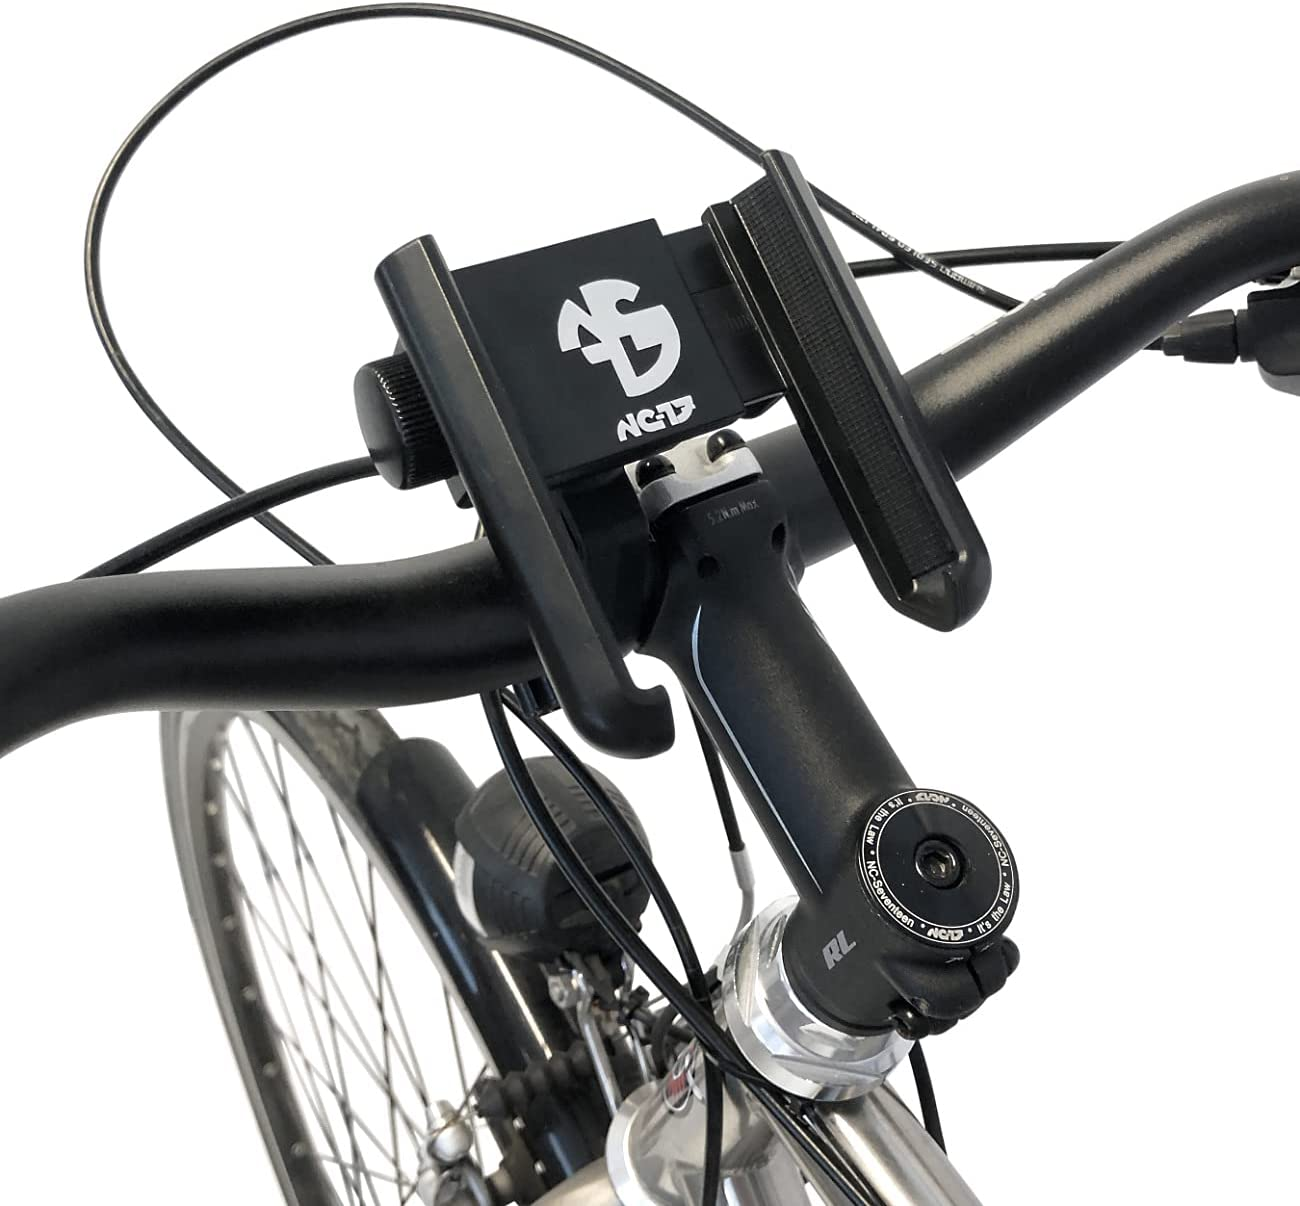 NC-17 3D One-Click Mount specialty shop El Paso Mall for and Mo Smartphone Handlebar